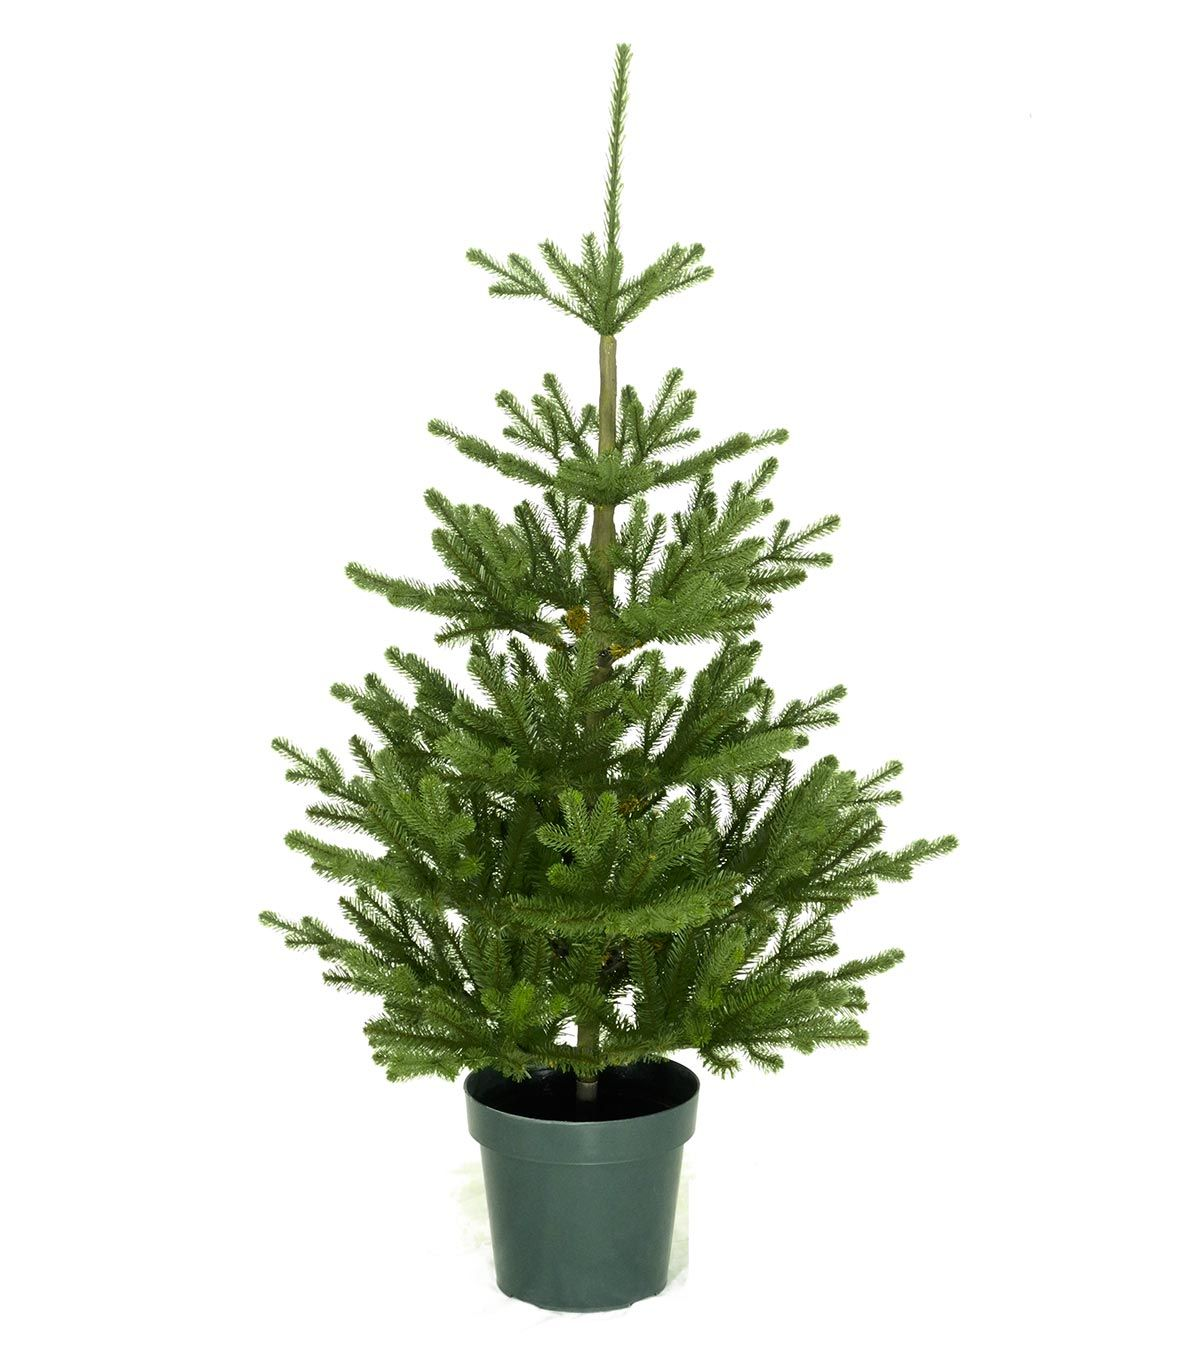 4ft Imperial Spruce Potted Feel Real Artificial Christmas Tree